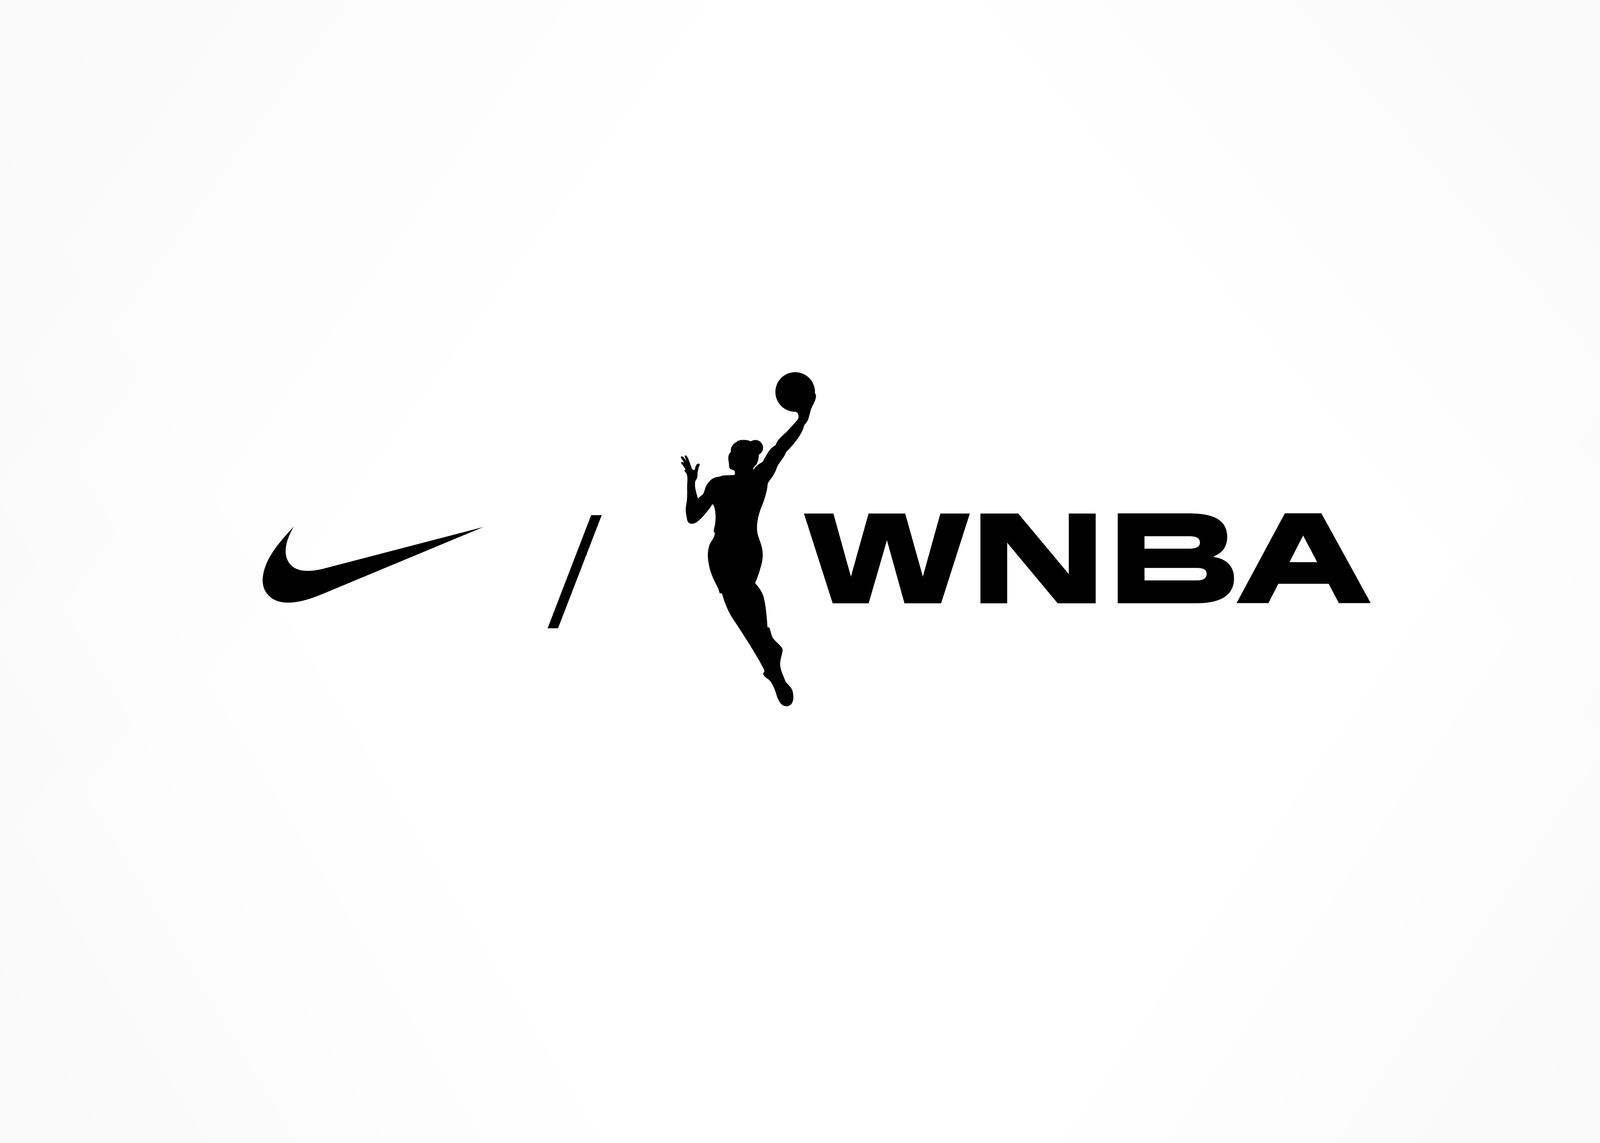 Nike WNBA Partnership and Grassroots Women's Basketball  0